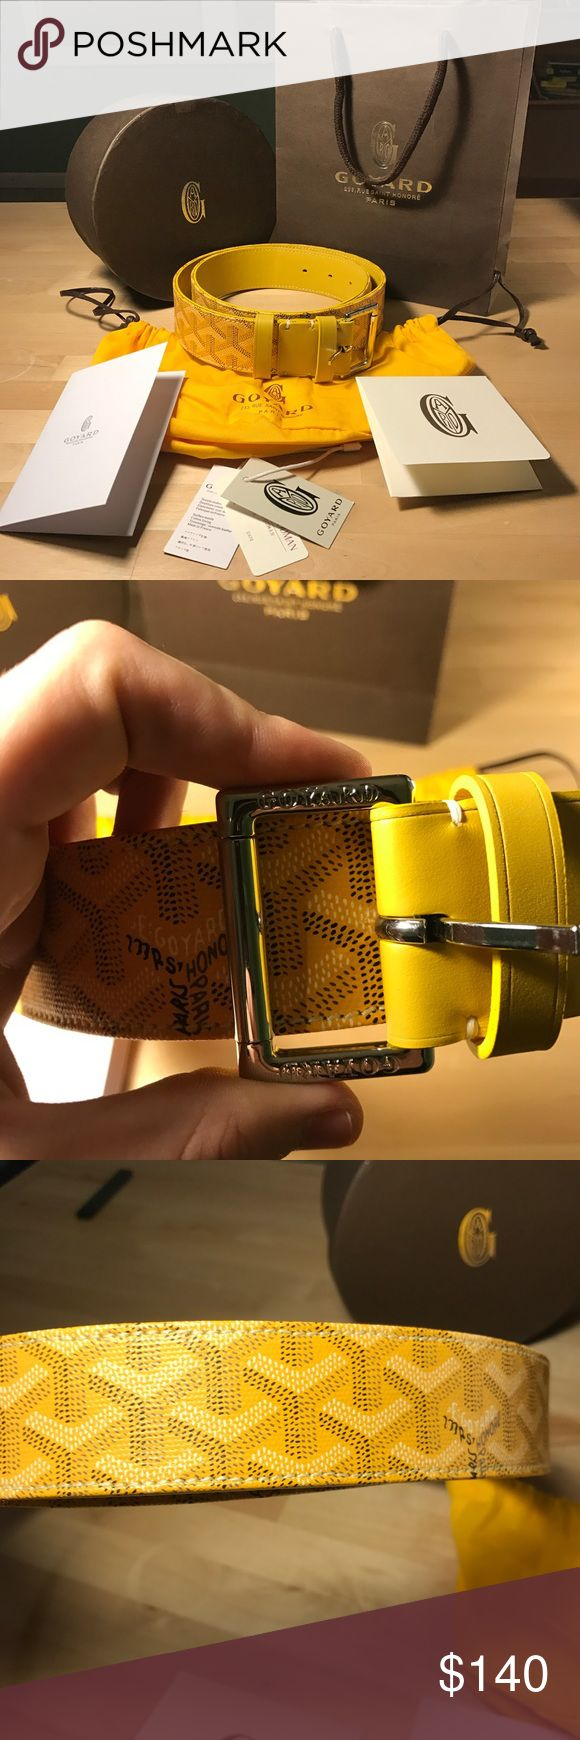 Goyard Belt Yellow For sale is a brand new Goyard Belt in yellow. Comes with all cards seen. 90 cm long, fits waist size 30-34 thanks to the multiple holes.   This belt is brand new as you can see by the photos. Never been worn. Comes with everything pictured, box, bag, and all.   Shipped via USPS priority mail the day of or day after your purchase. Please message me with any further questions or inquiries. Thank you Goyard Accessories Belts